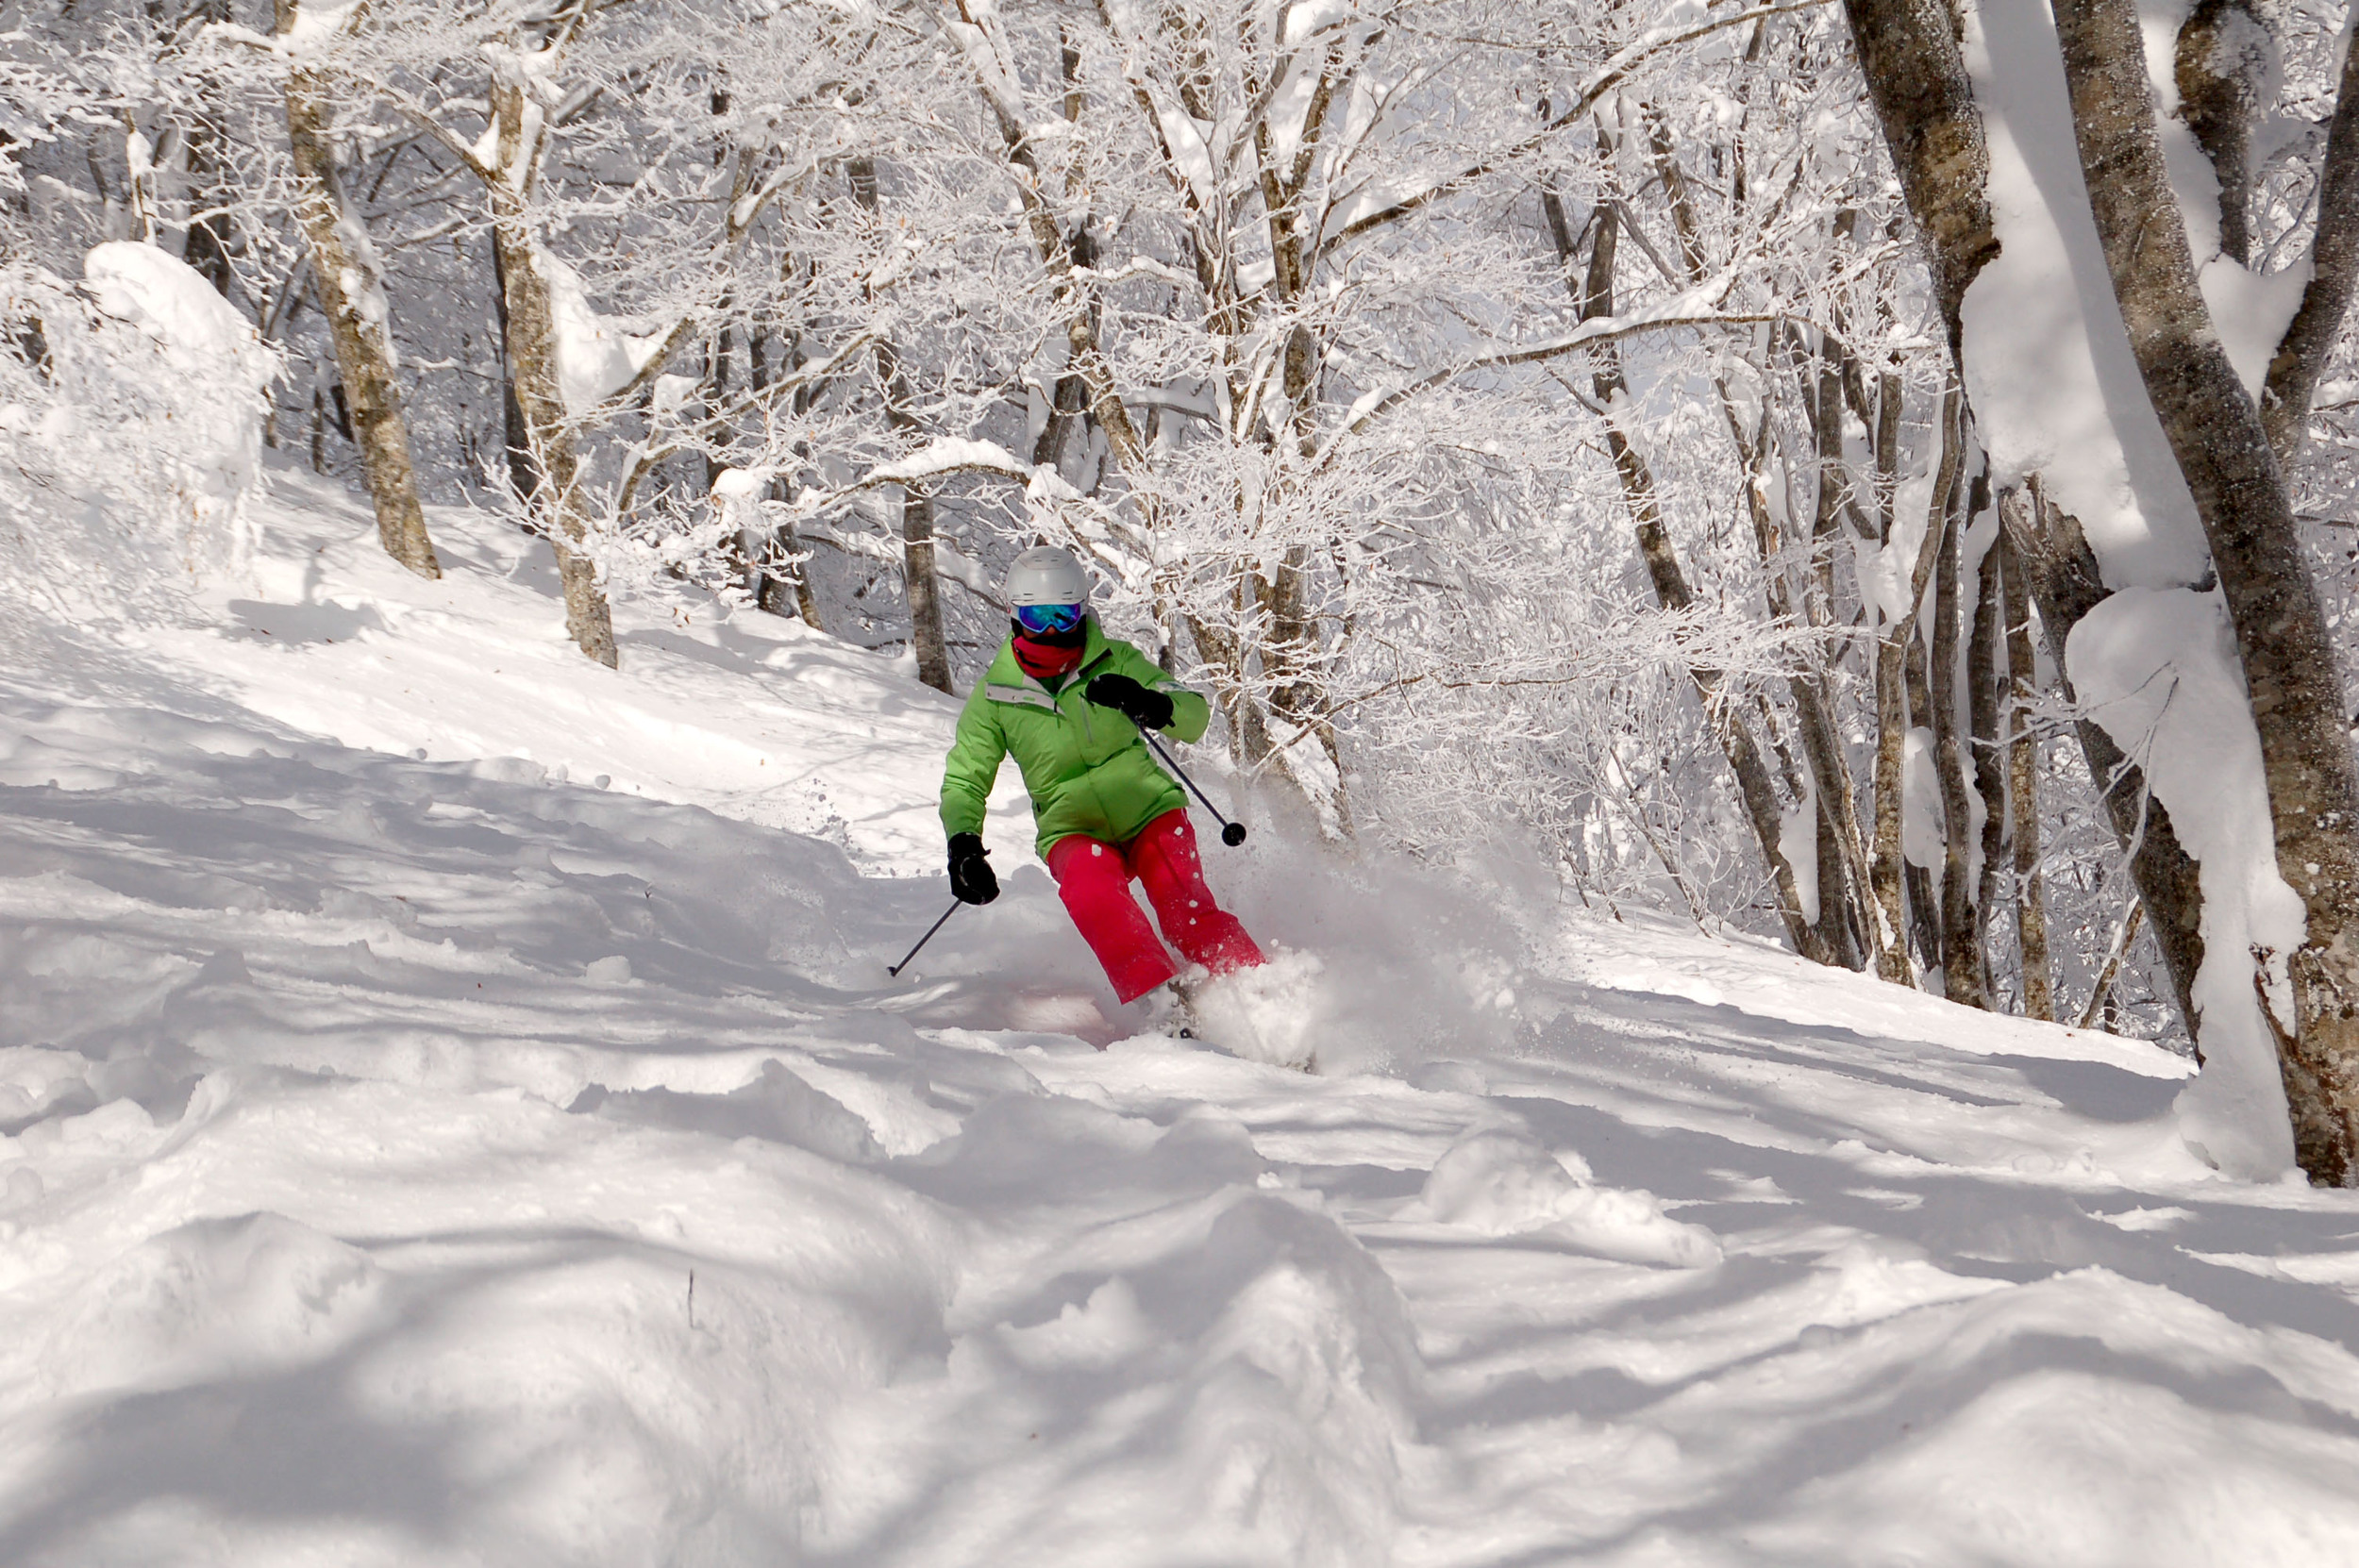 Pure Snow standing out in Hakuba